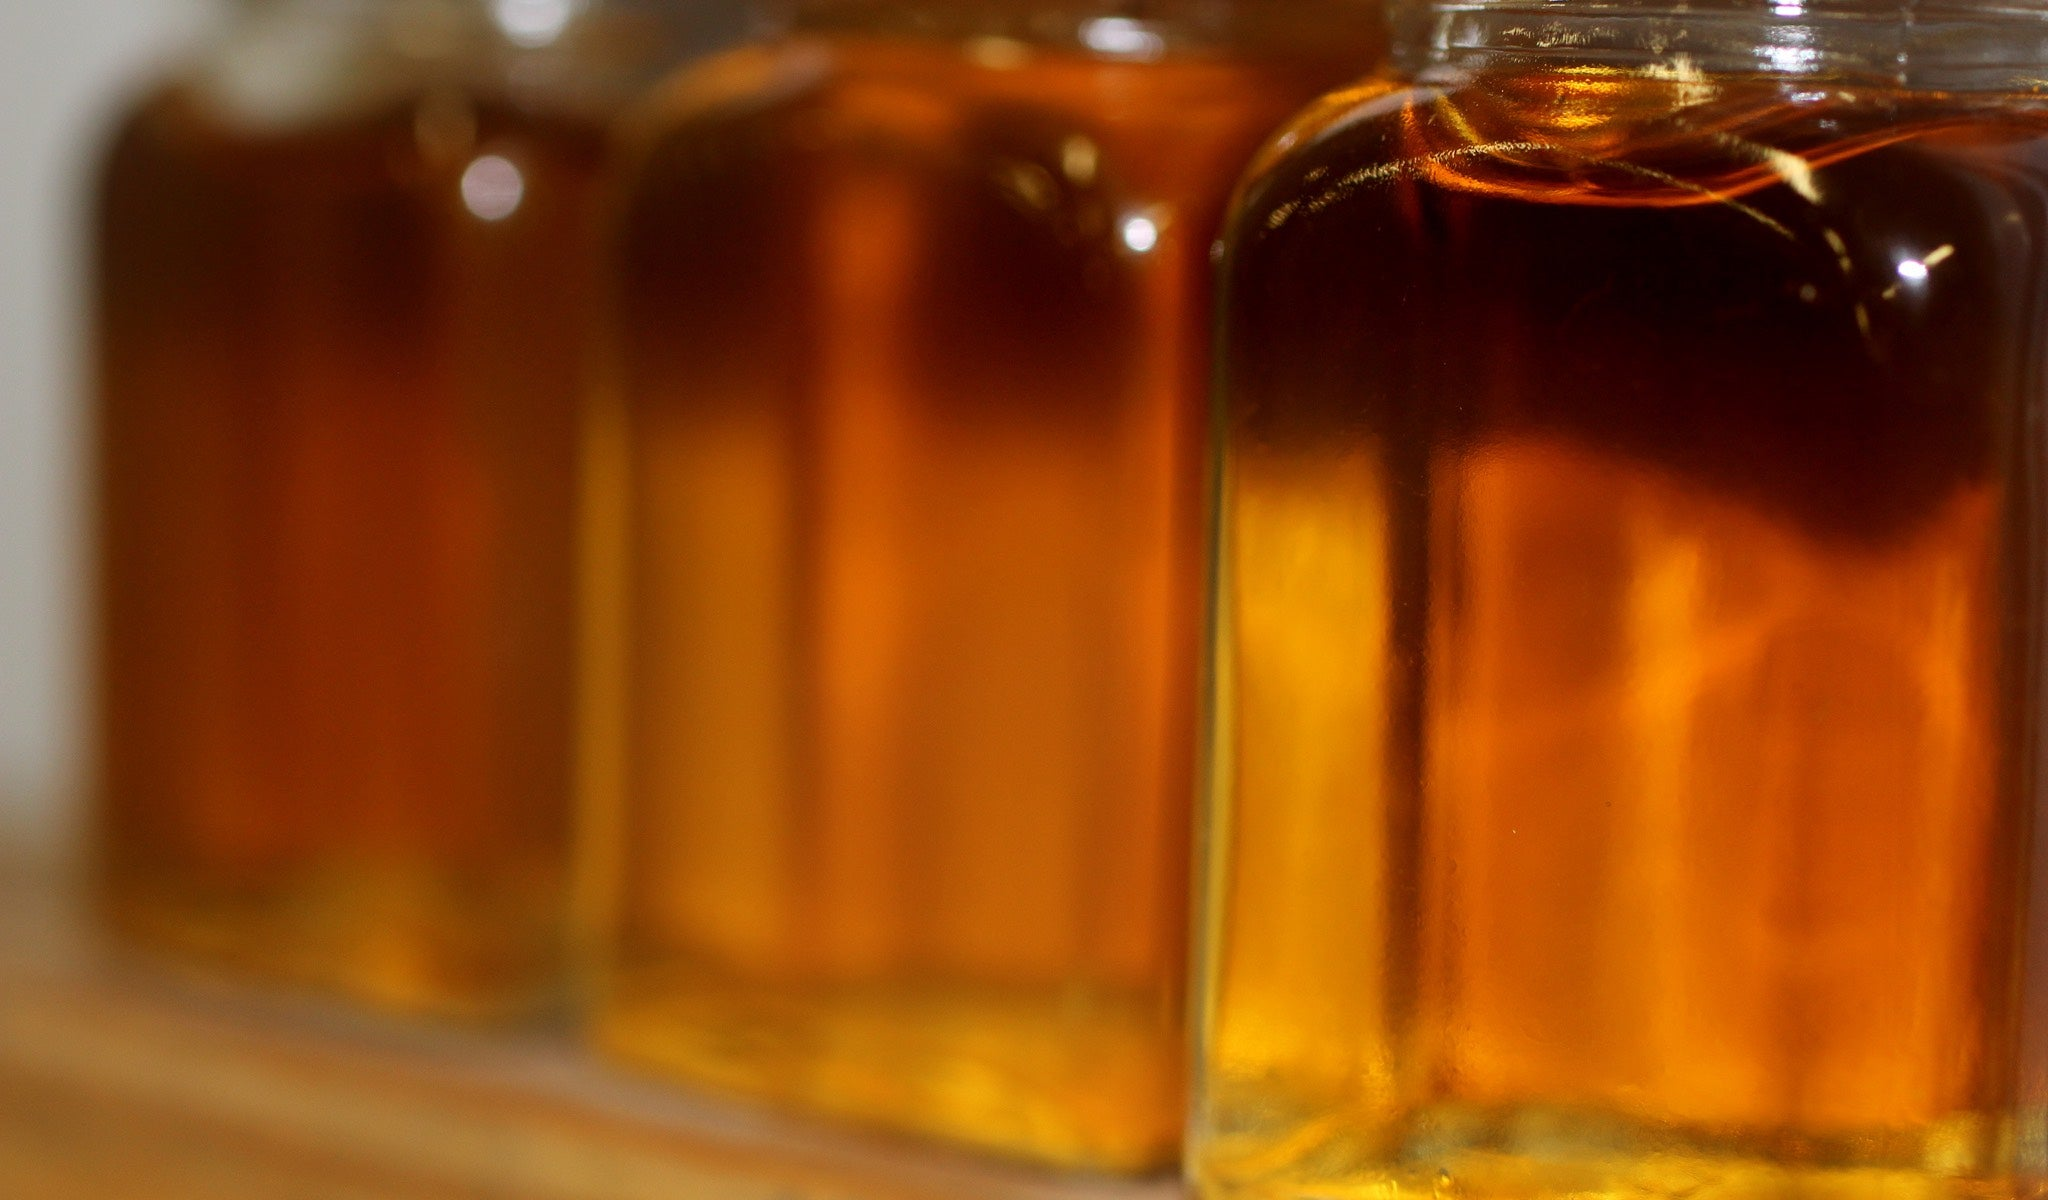 Delicious Maple Syrup Enlisted In Bitter Fight Against Antibiotic Resistance